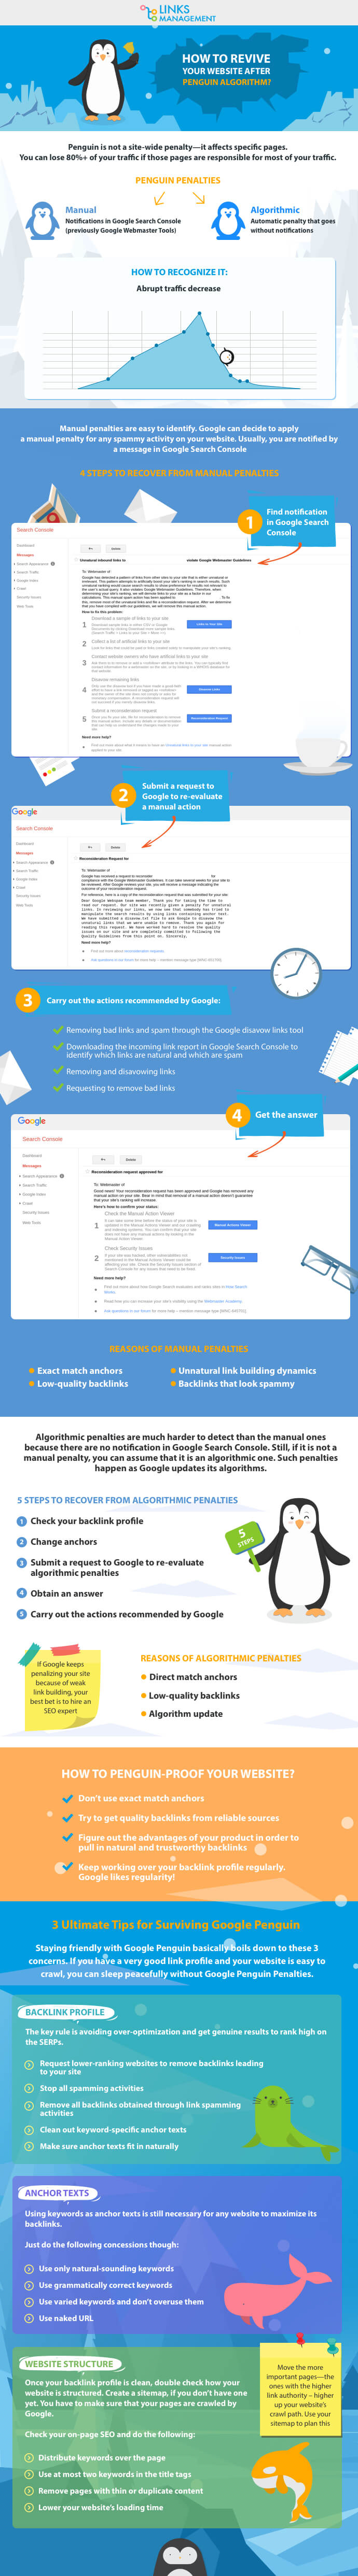 Revive Your Website after Penguin Algorithm-infographic-plaza